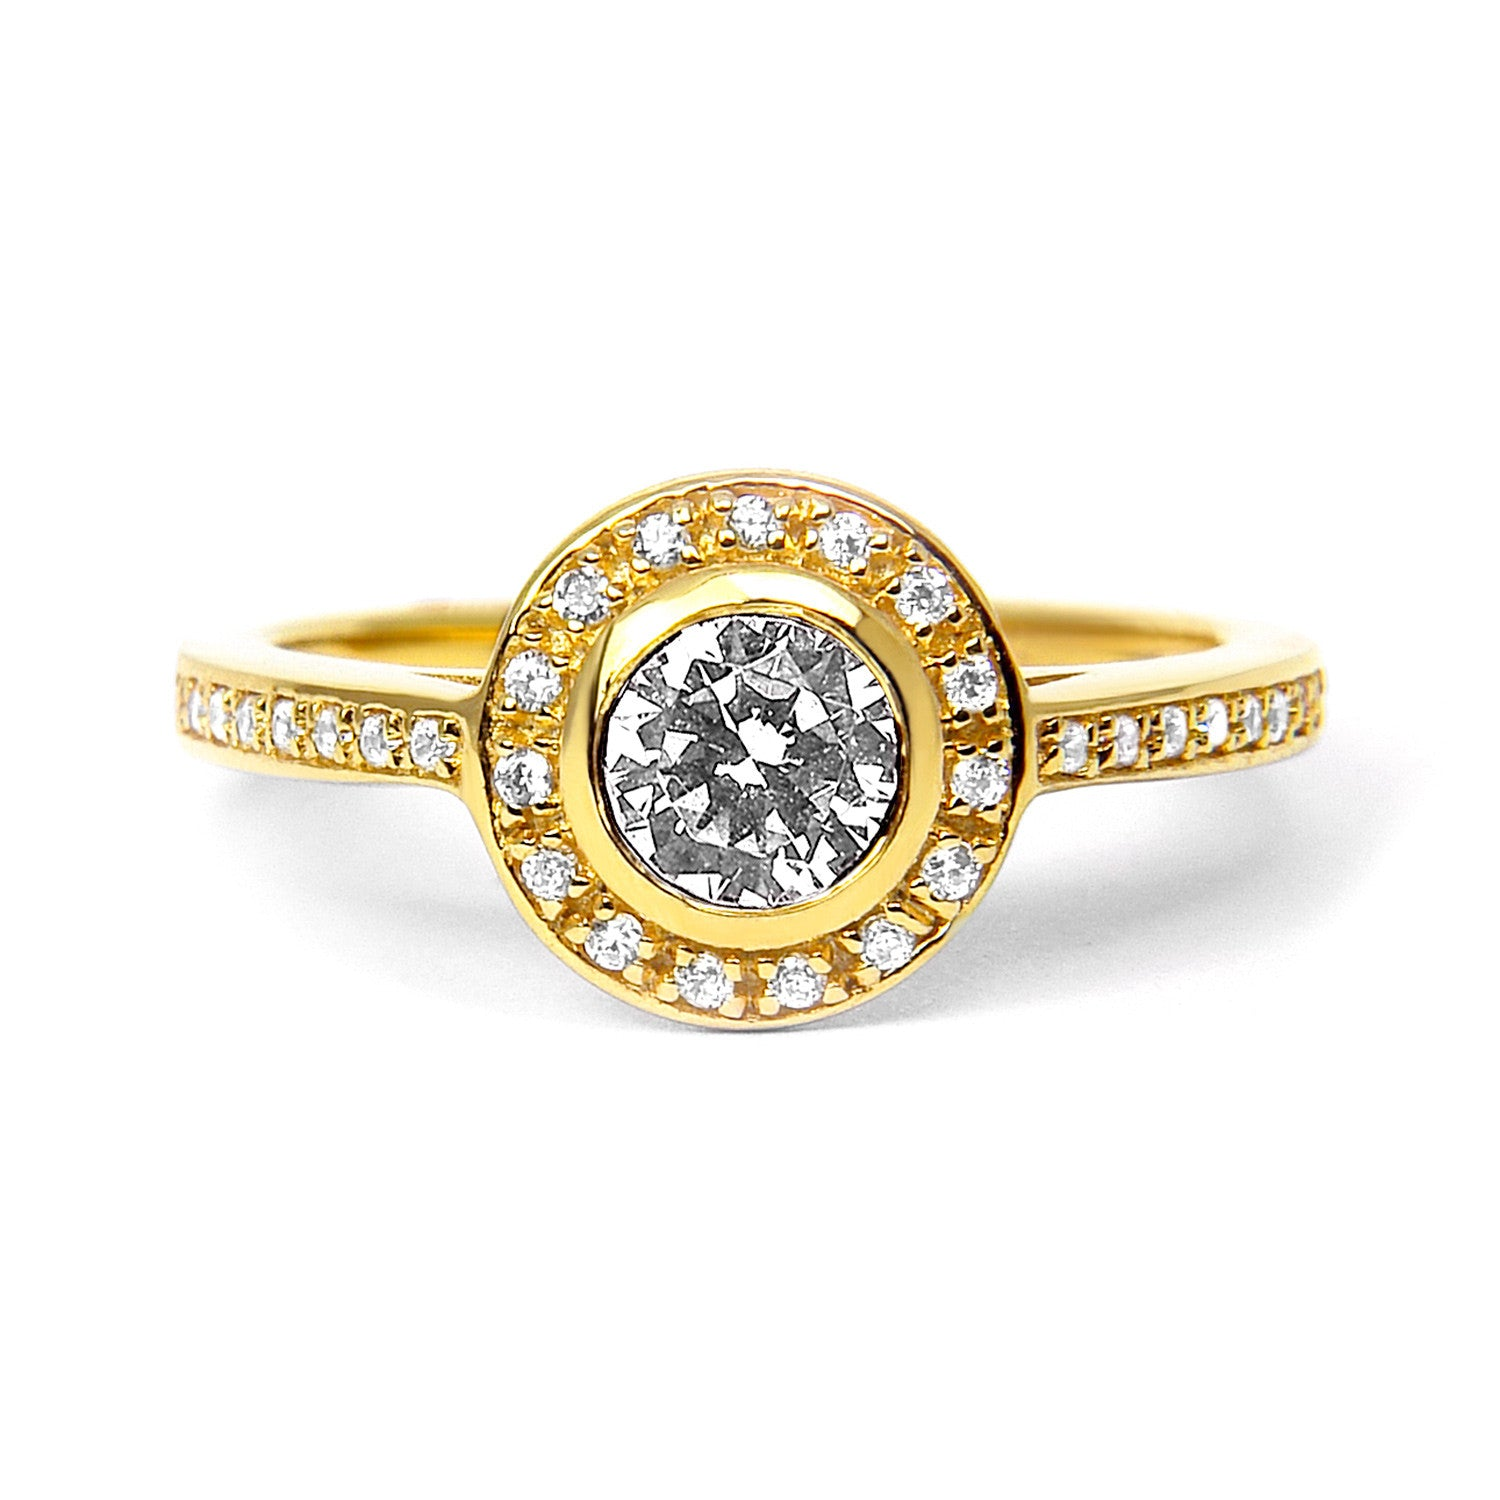 Efflorescence Ethical Diamond Engagement Ring, 18ct Fairtrade Gold - Arabel Lebrusan